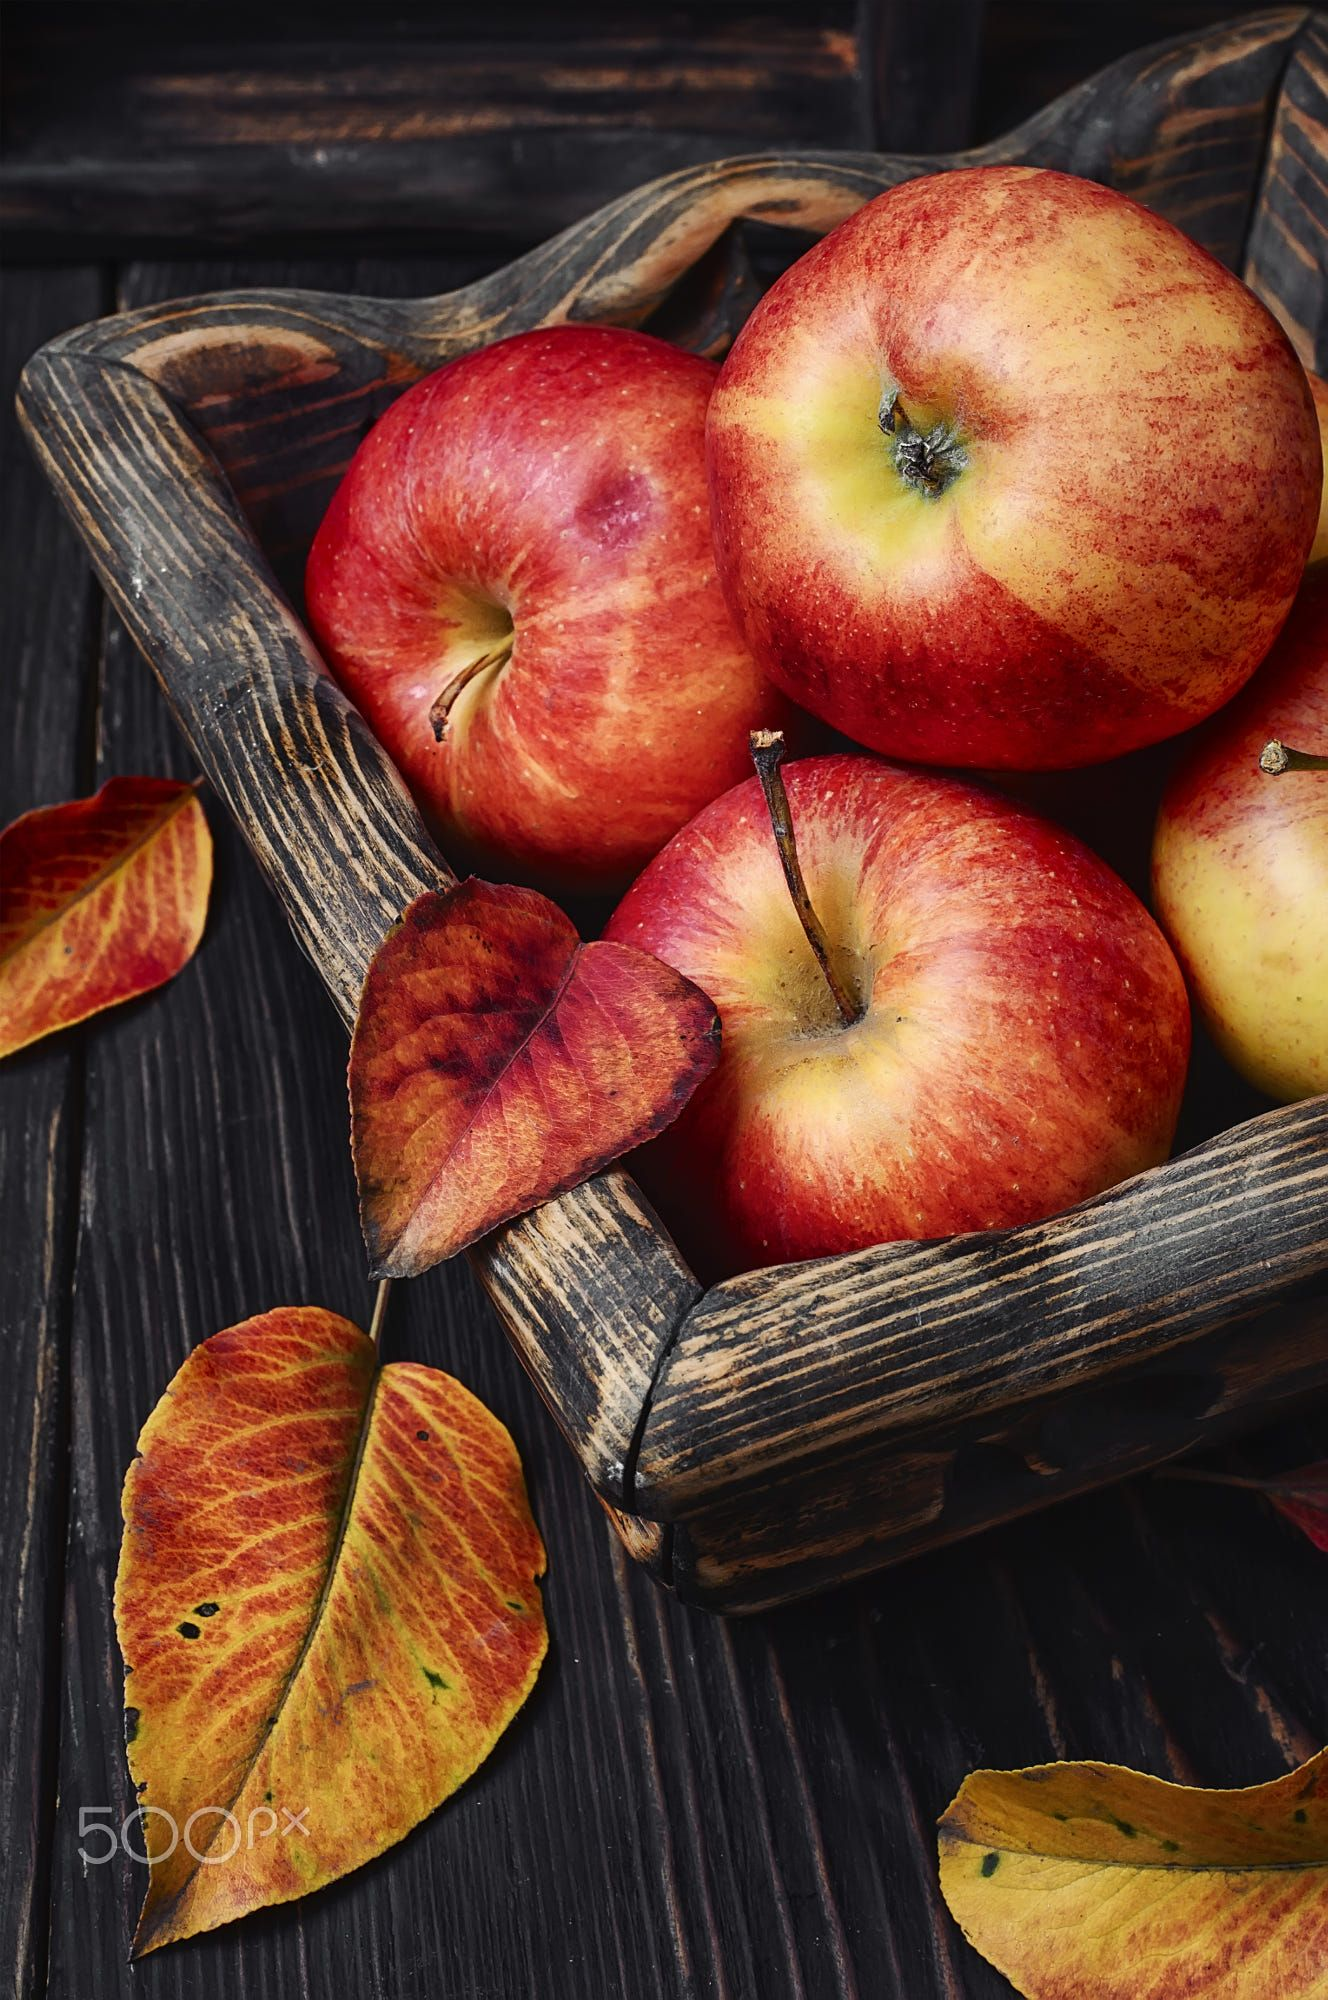 Apples By Mykola Lunov Apples Photography Fruit Photography Fall Apples